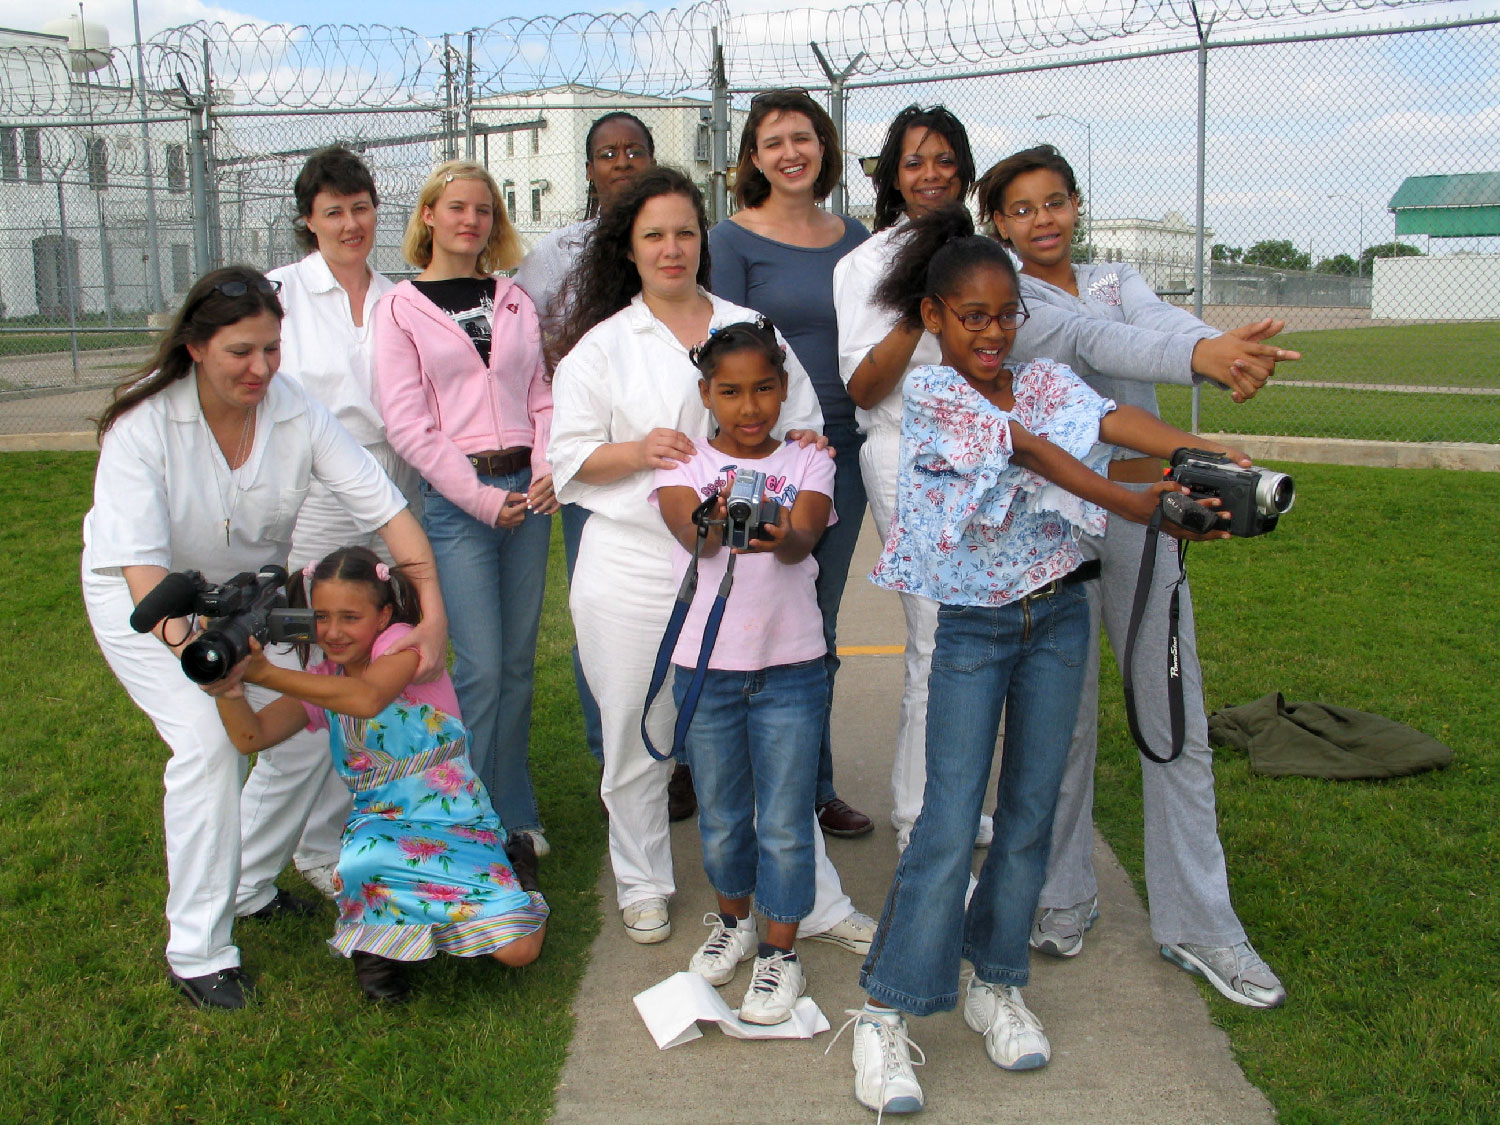 The Girls and Moms from Troop 1500